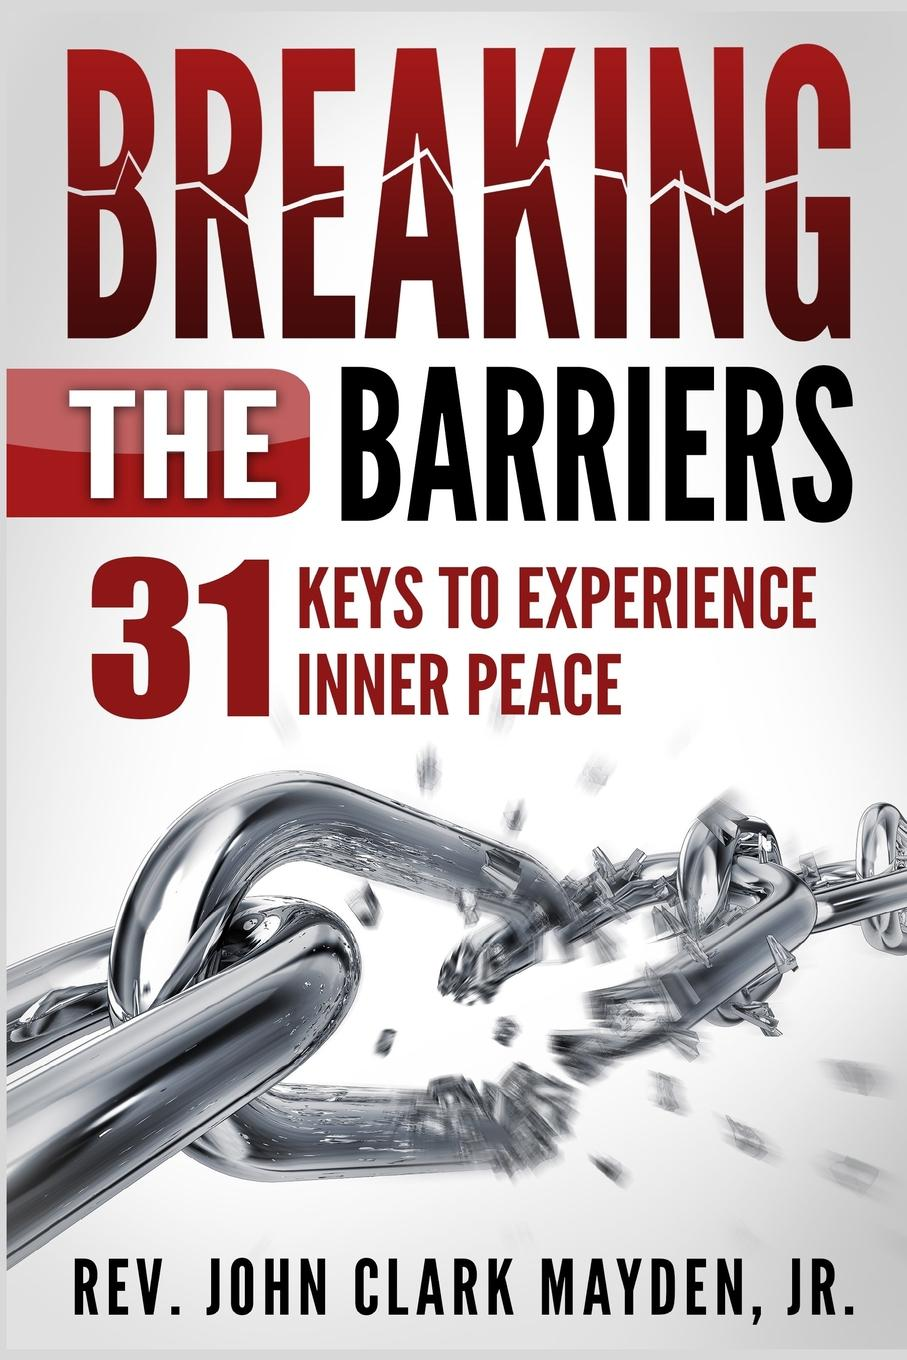 Rev. John Clark Mayden Jr. Breaking the Barriers. 31 Keys to Experience Inner Peace barriers